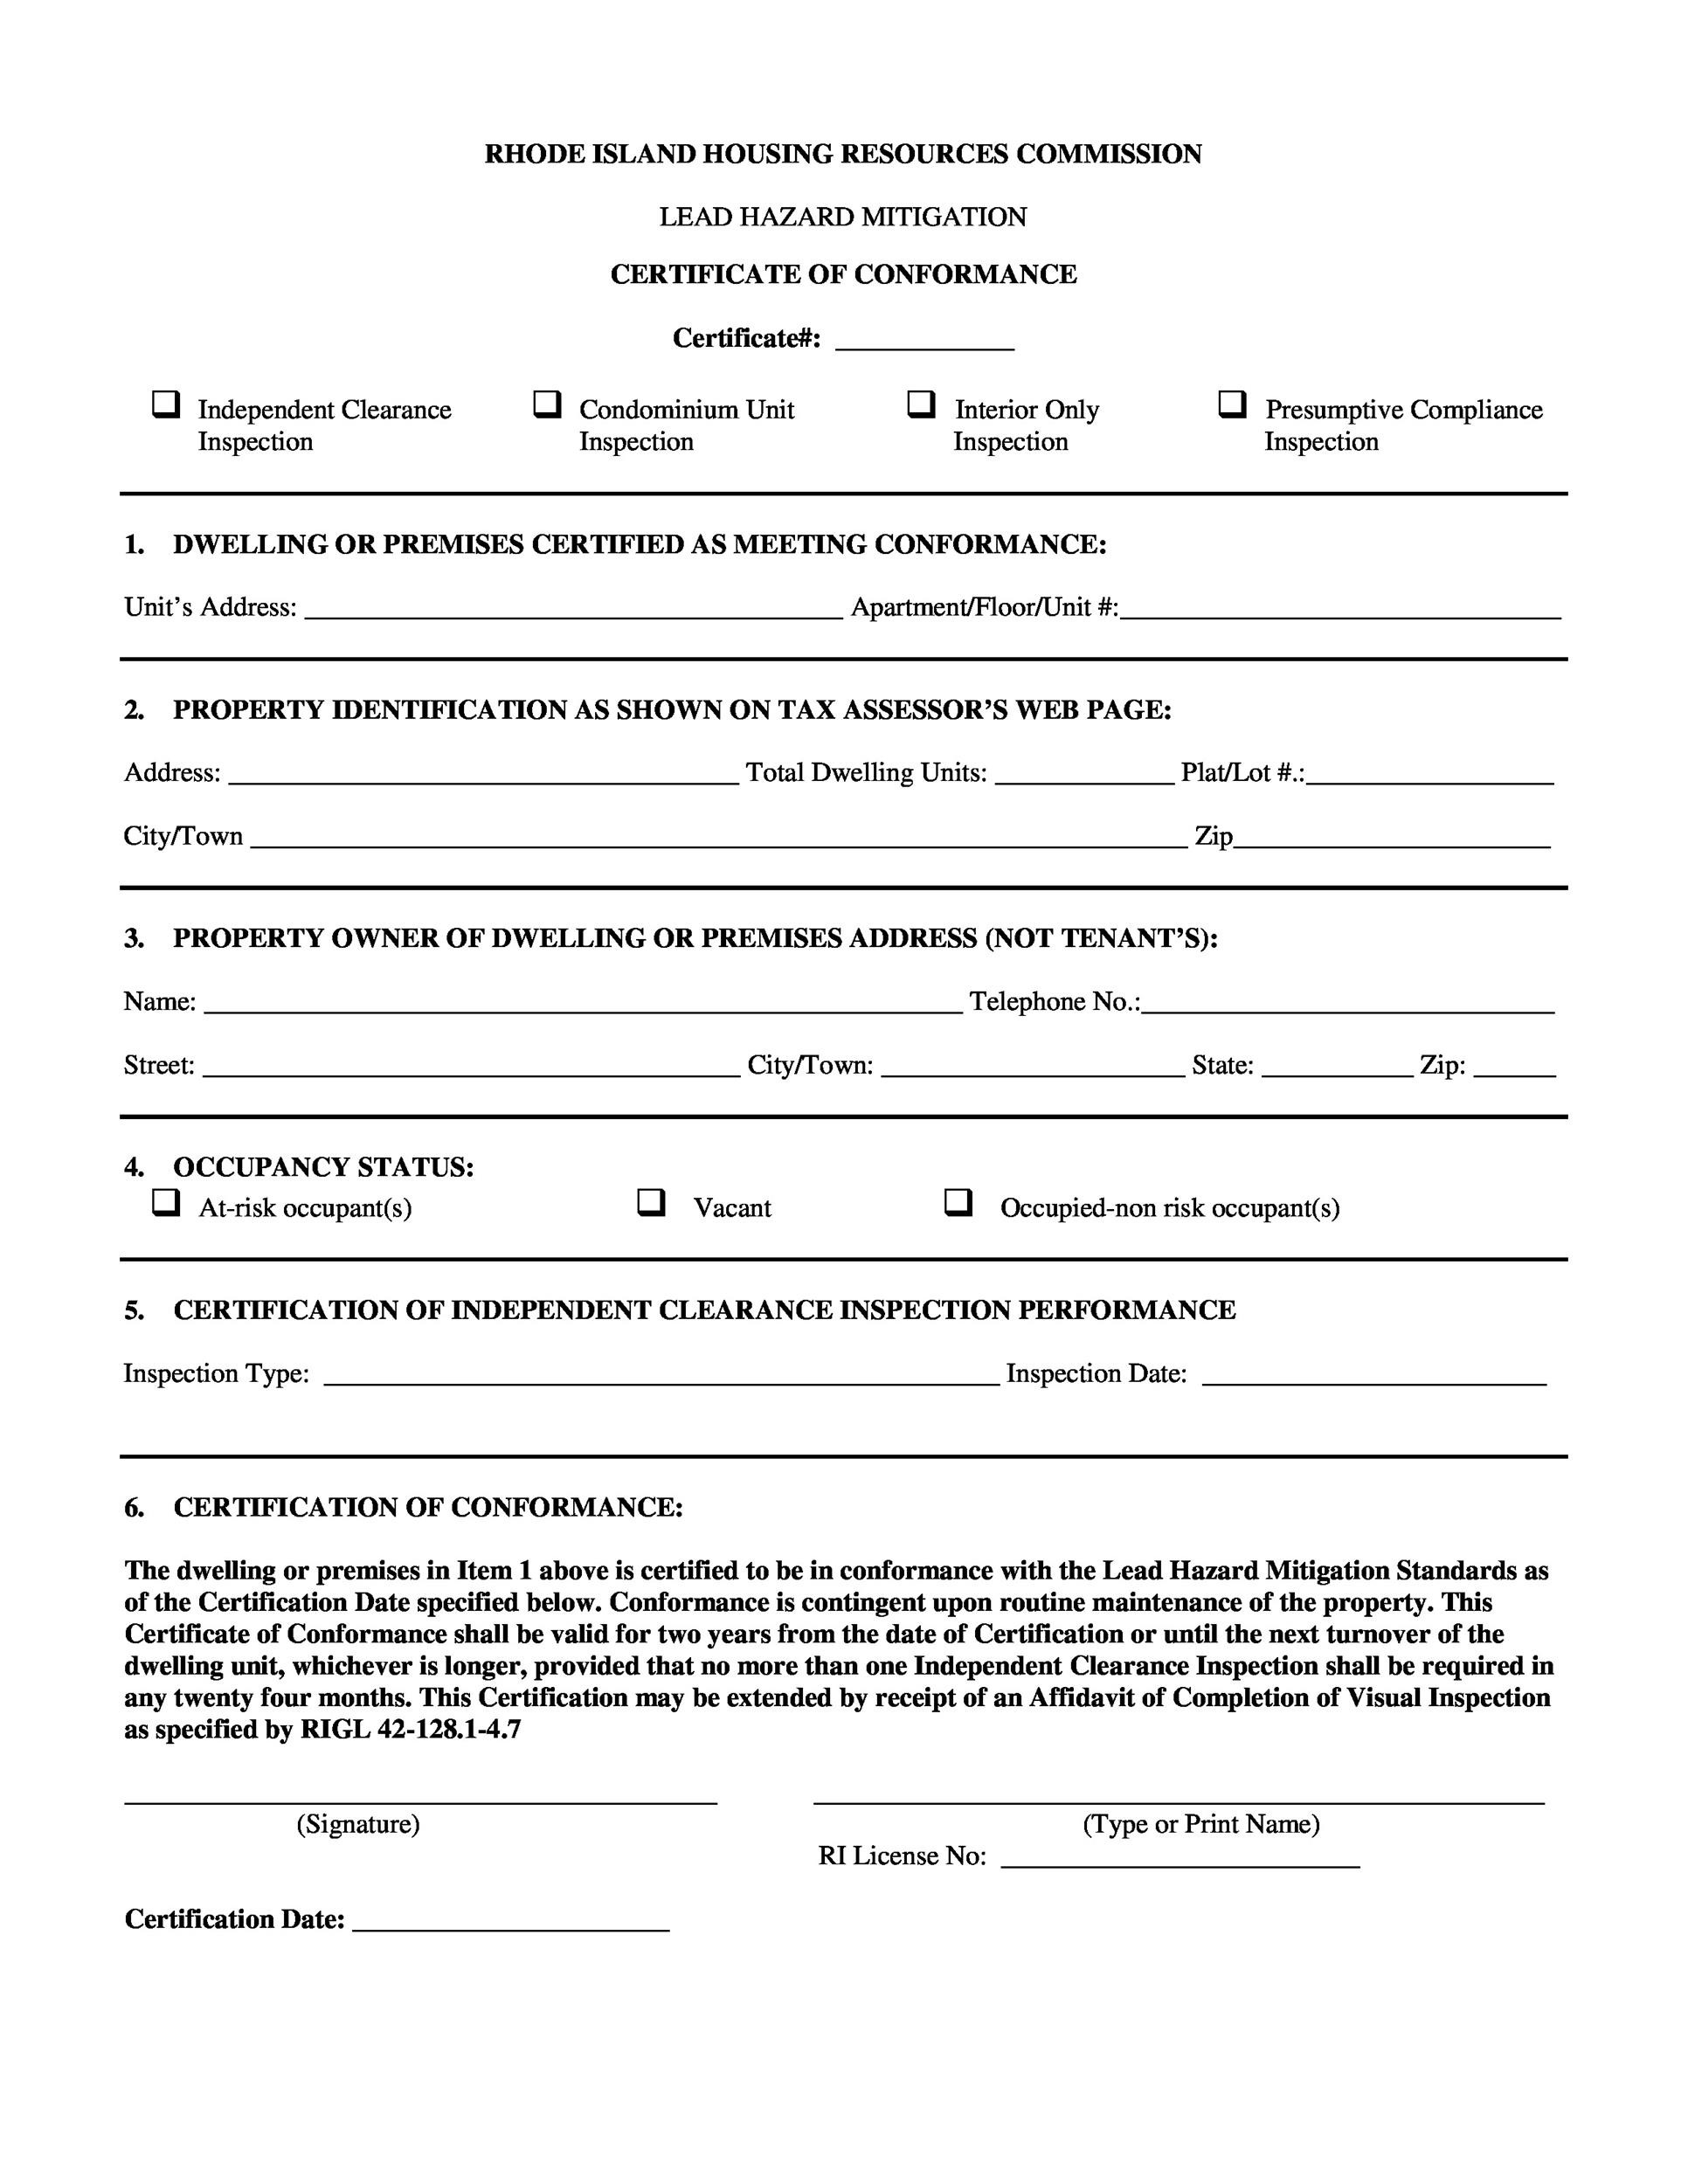 40 Free Certificate Of Conformance Templates Amp Forms